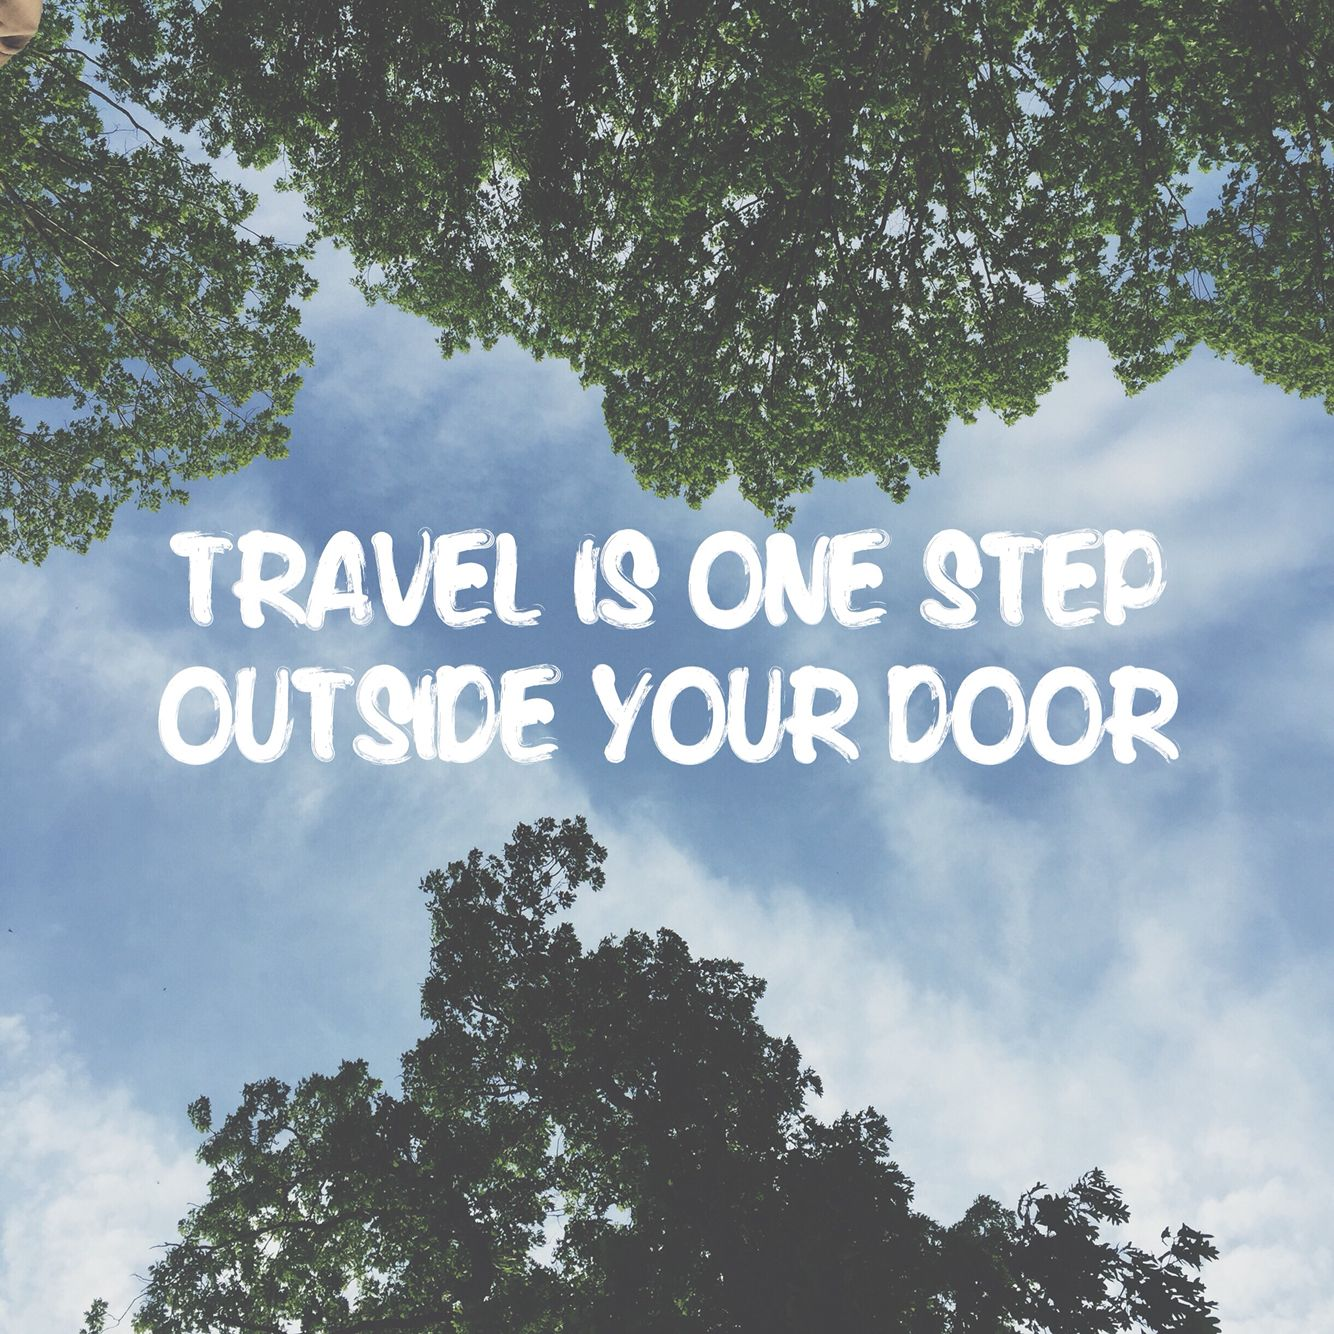 Travel inspiration is right outside your door. #quotes #wanderlust #nature #photography